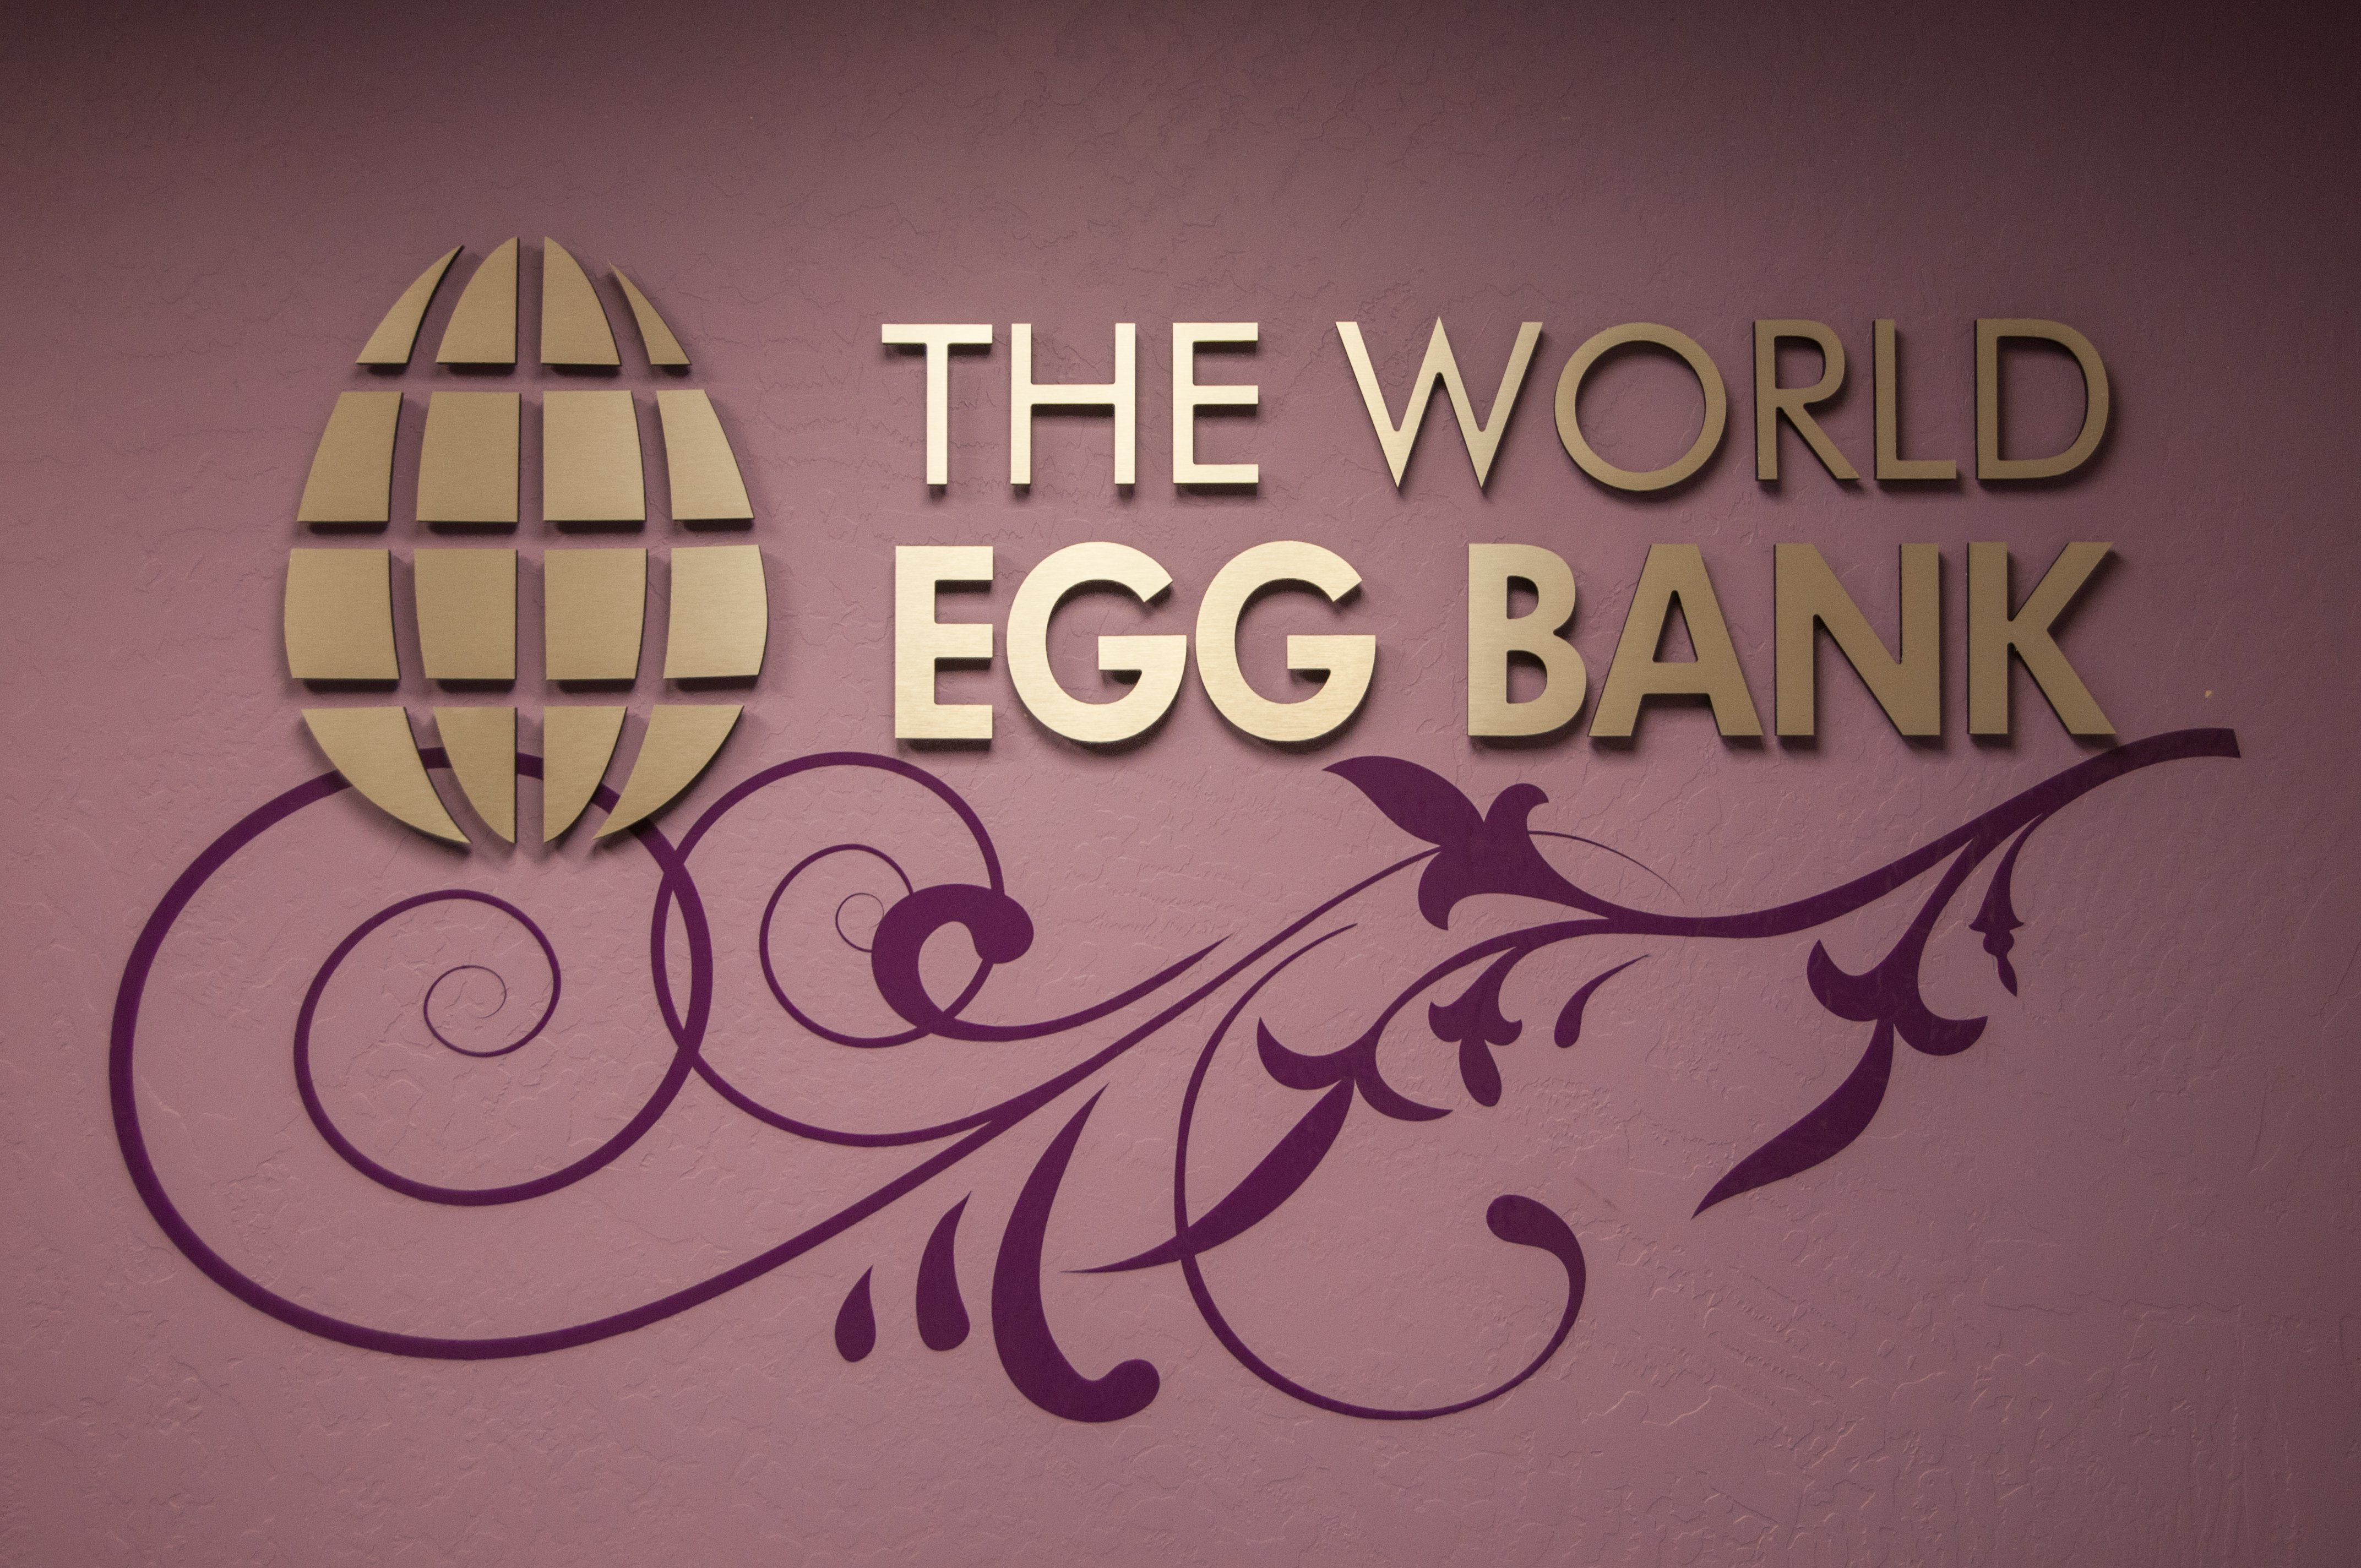 The World Egg Bank